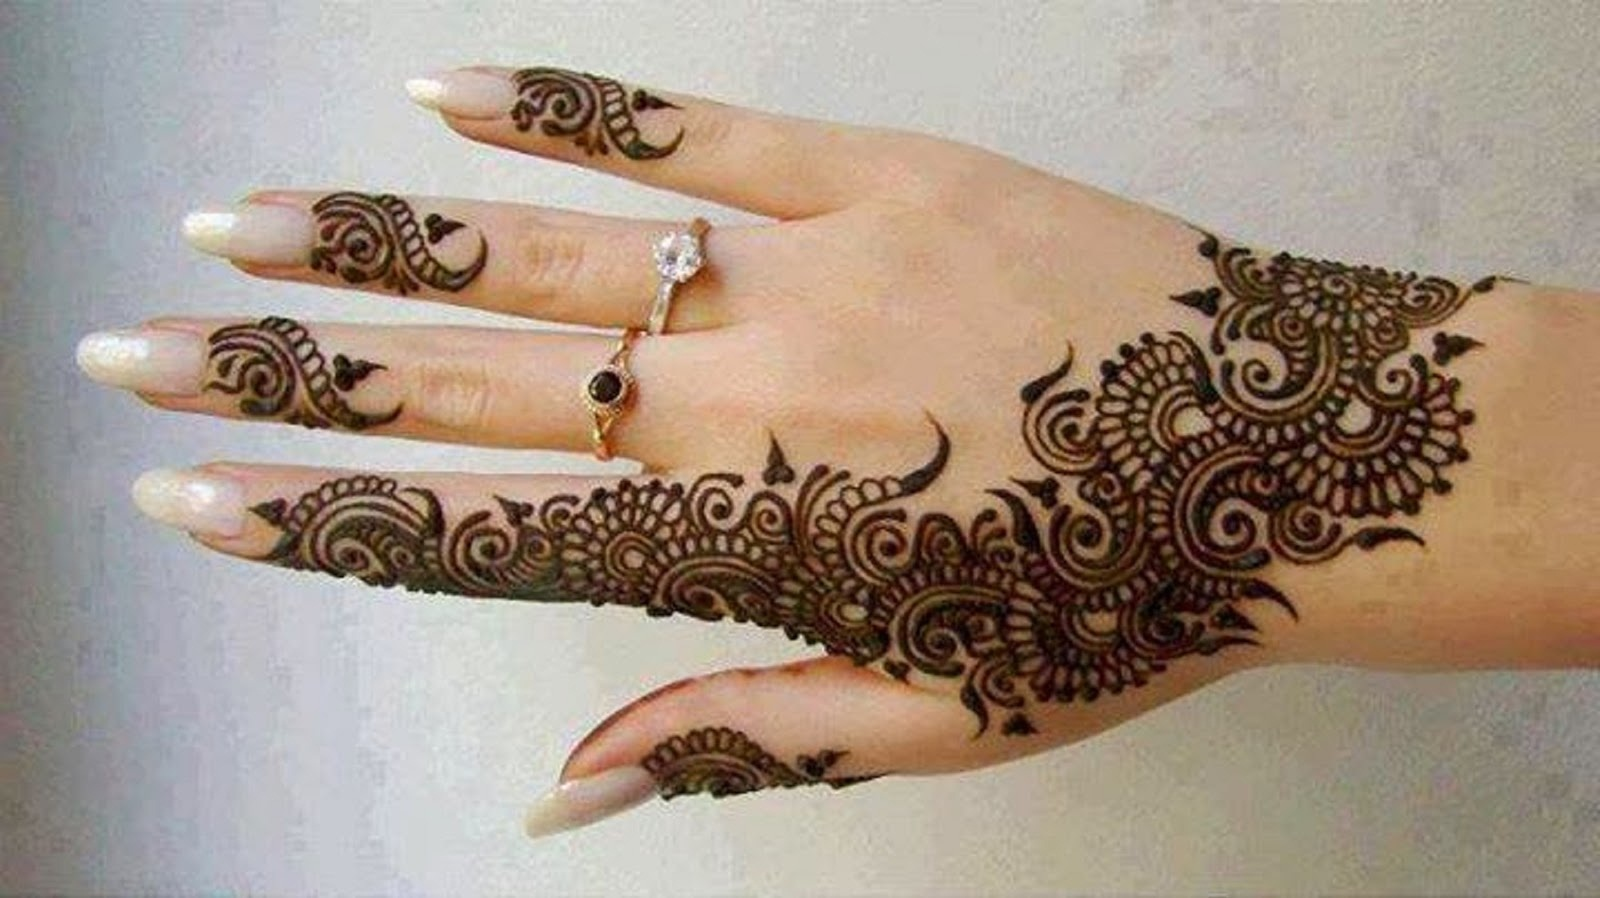 The best mehndi designs for hands livinghours - Popular Mehndi Designs For Back Hand Side 009